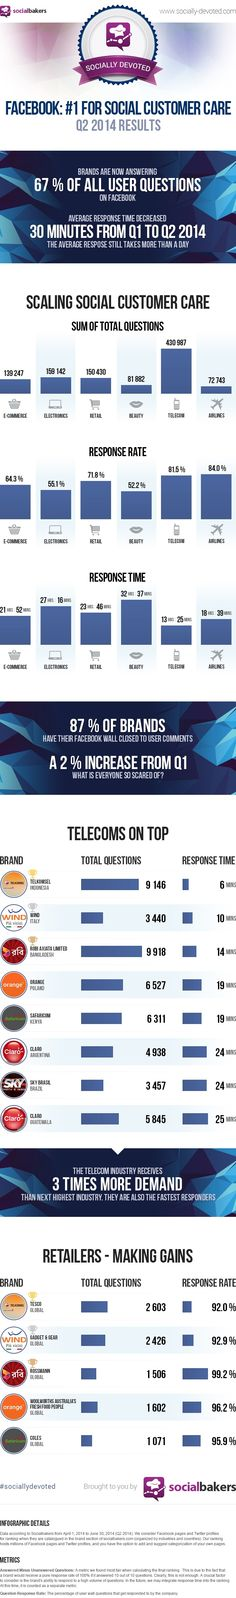 Telecommunications Companies on Facebook Are 'Socially Devoted' in 2Q